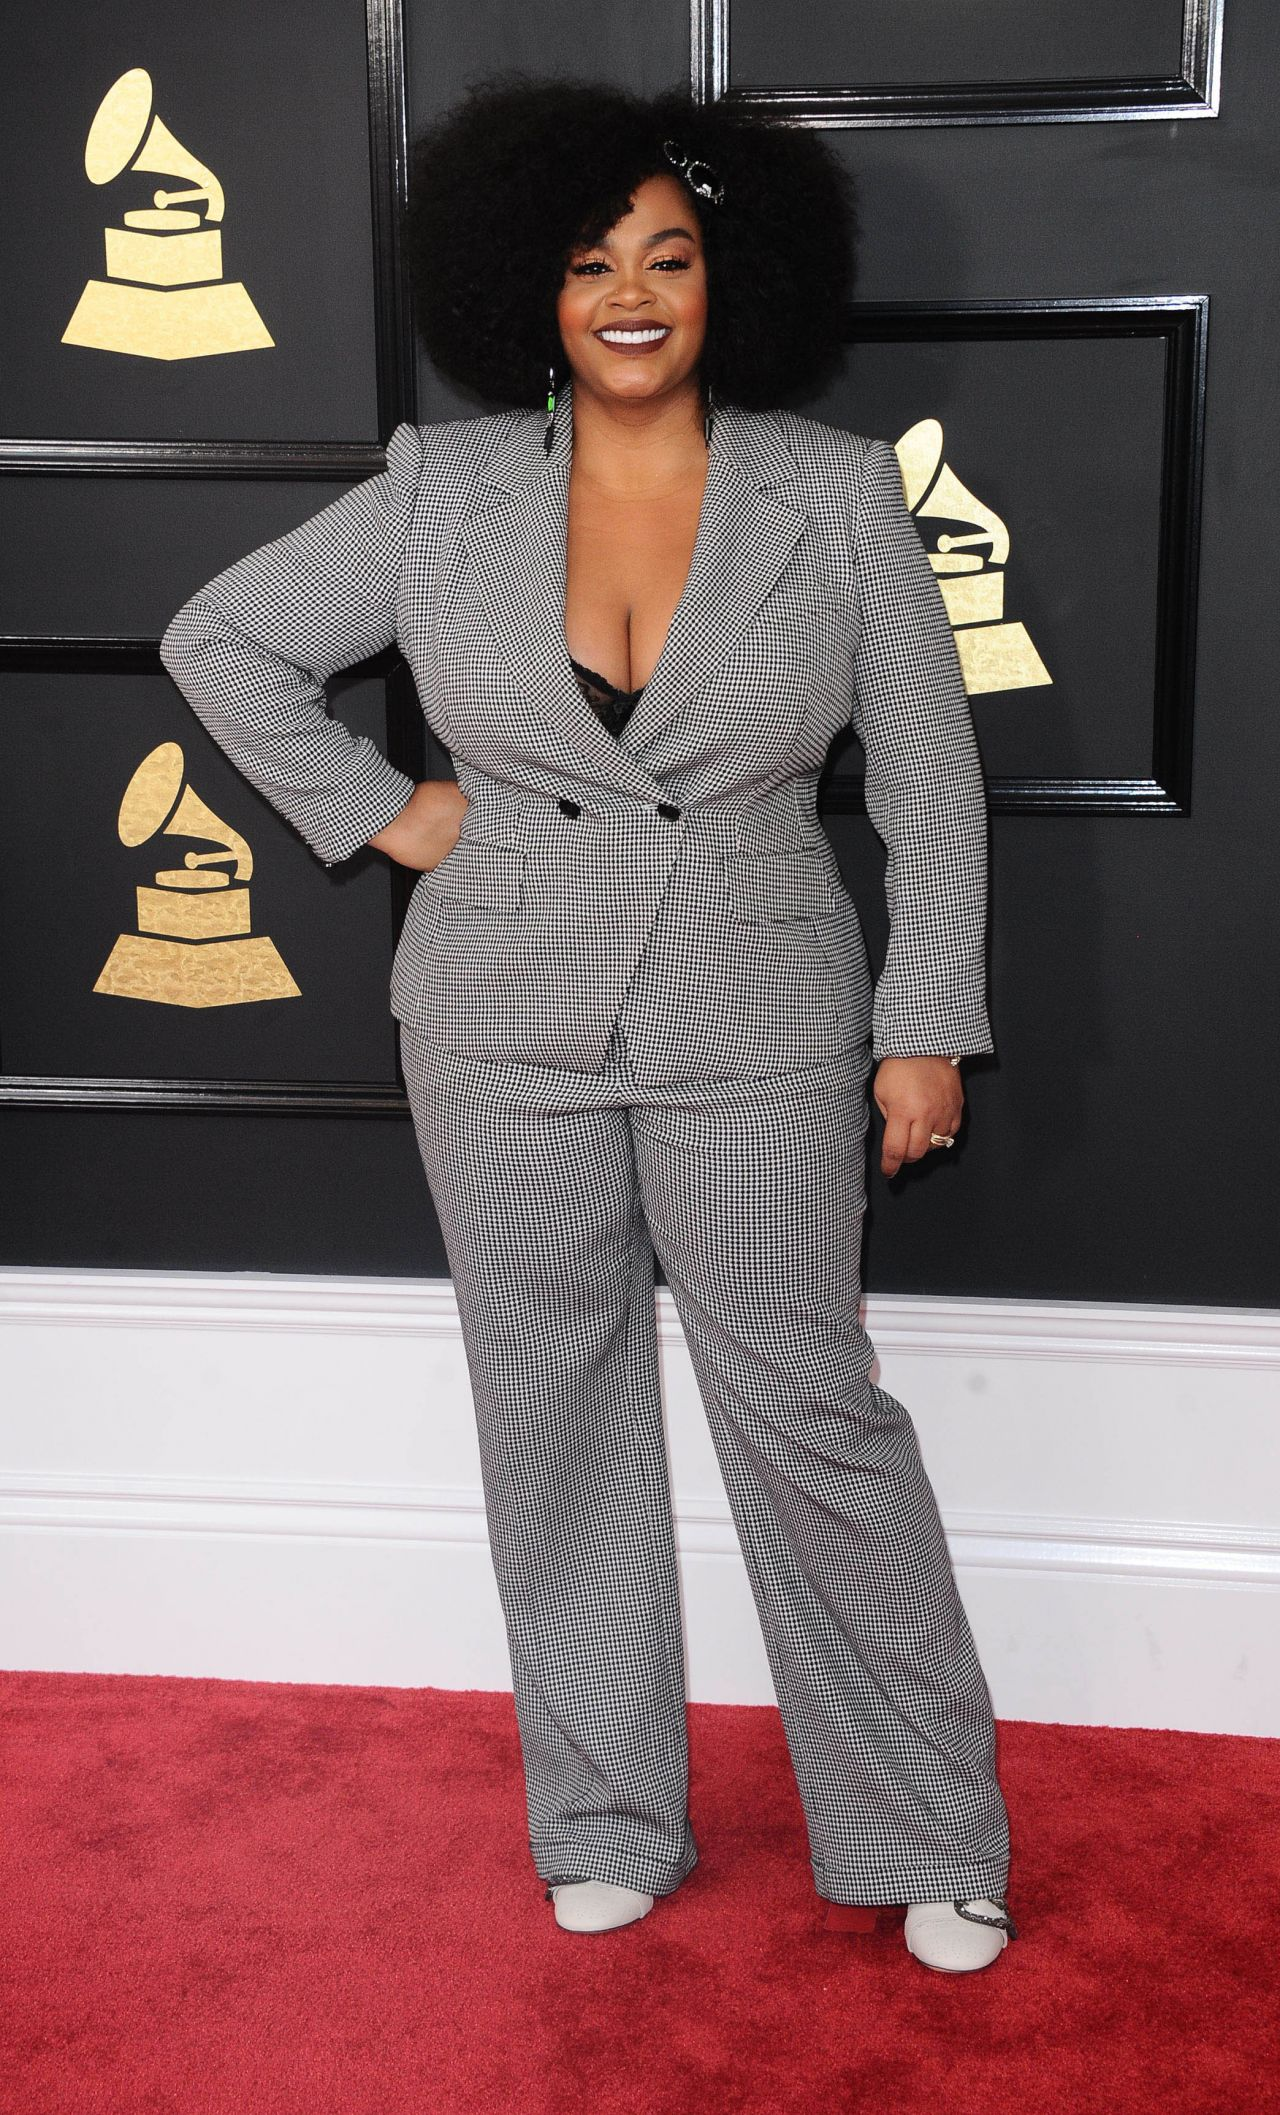 Jill Scott Latest Photos CelebMafia